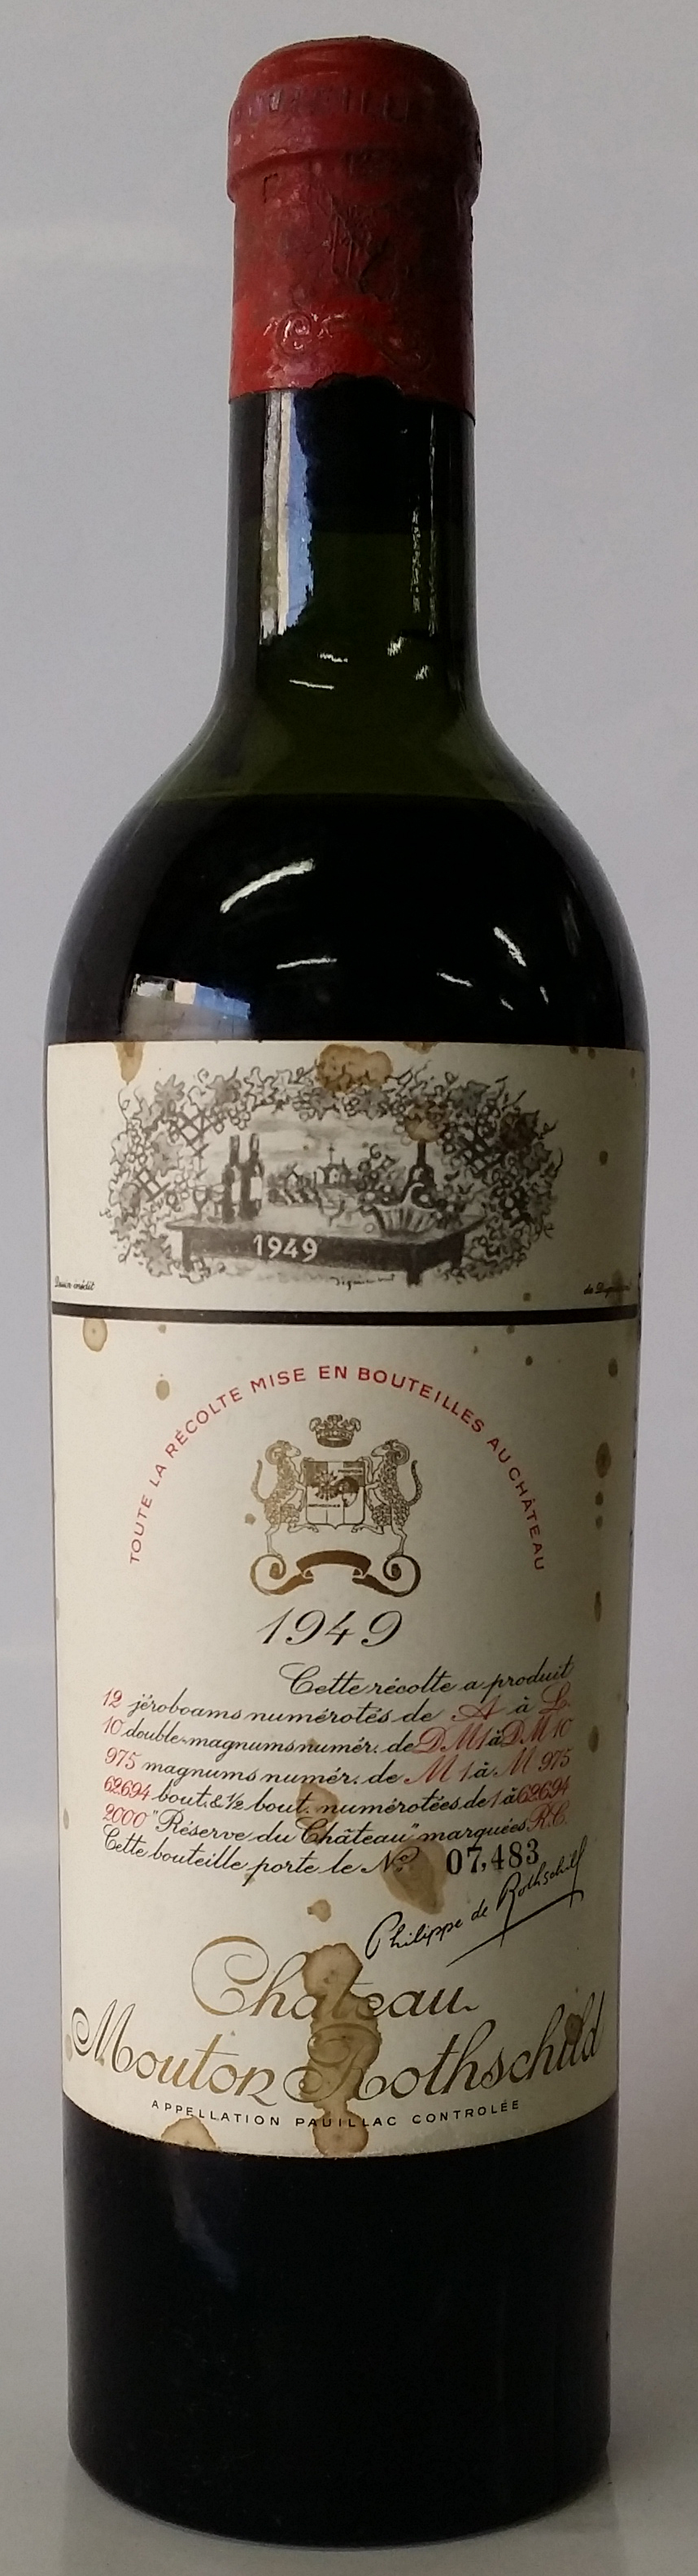 1949 Baron Philippe de Rothschild Chateau Mouton Rothschild